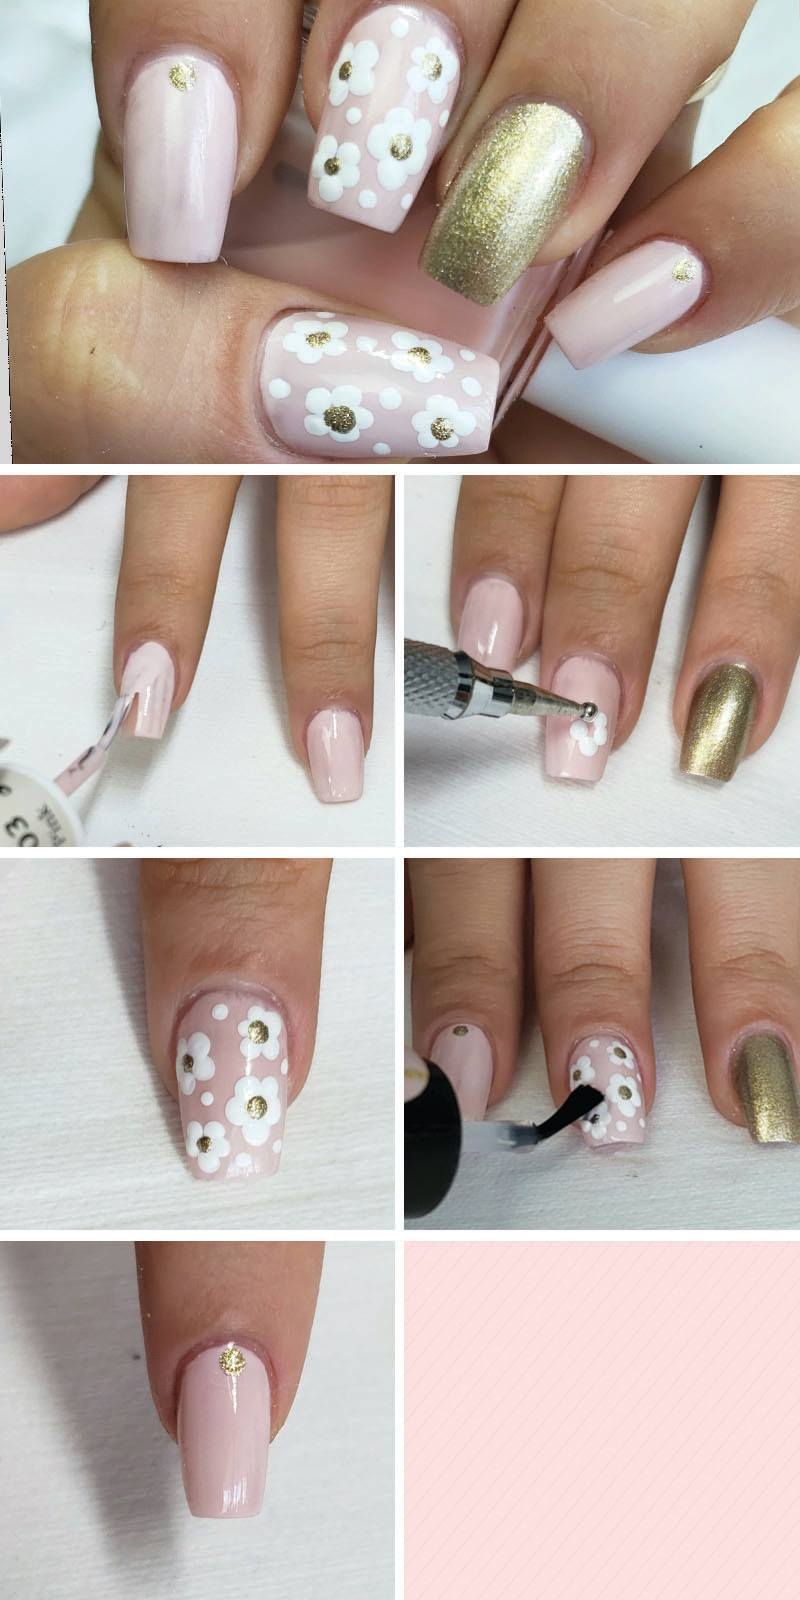 How To Do Nail Art 6 Easy Tutorials To Do At Home All Nail Art